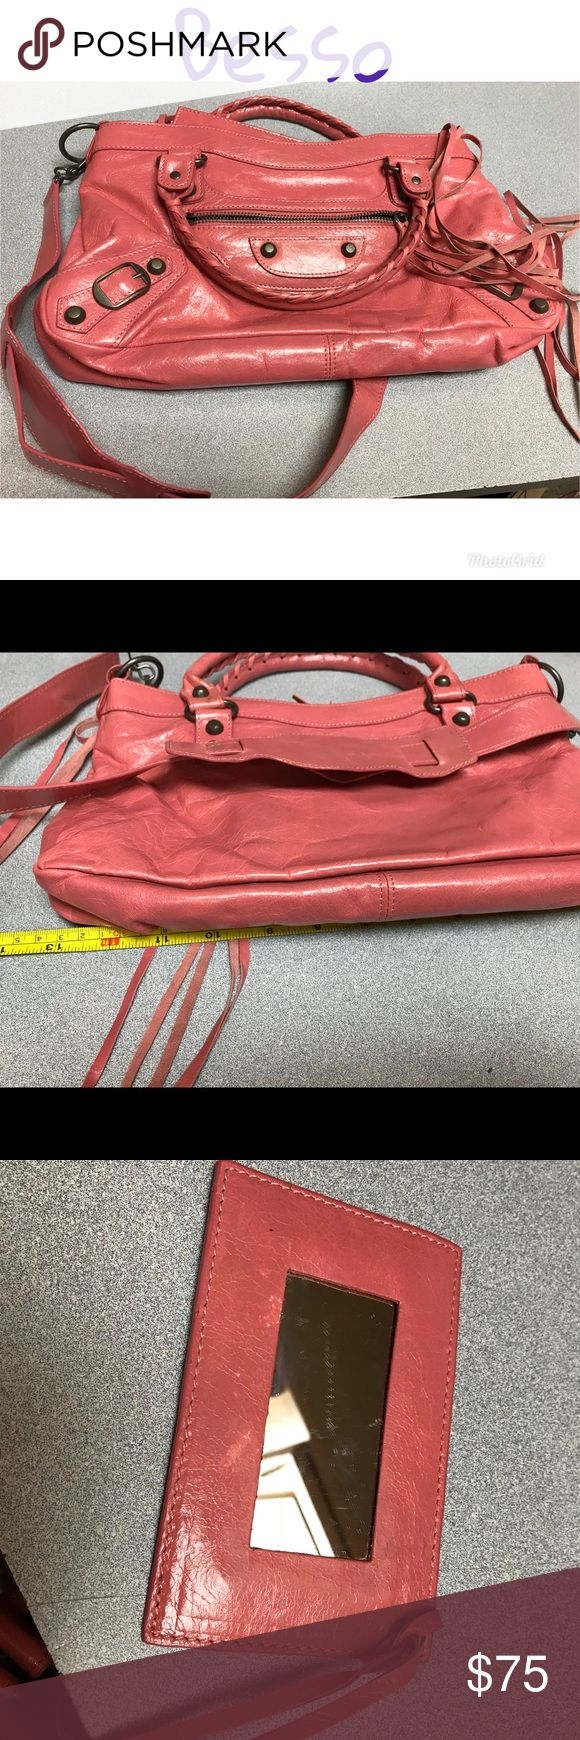 "Besso Beautiful pink Italian leather purse GUC! Beautiful buttery soft Italian leather, boutique purse! Besso specializes in making Balenciaga Motorcycle bag ""knock offs"". Great condition, cute little mirror on a leather strap and pockets! No stains. Bags Shoulder Bags"